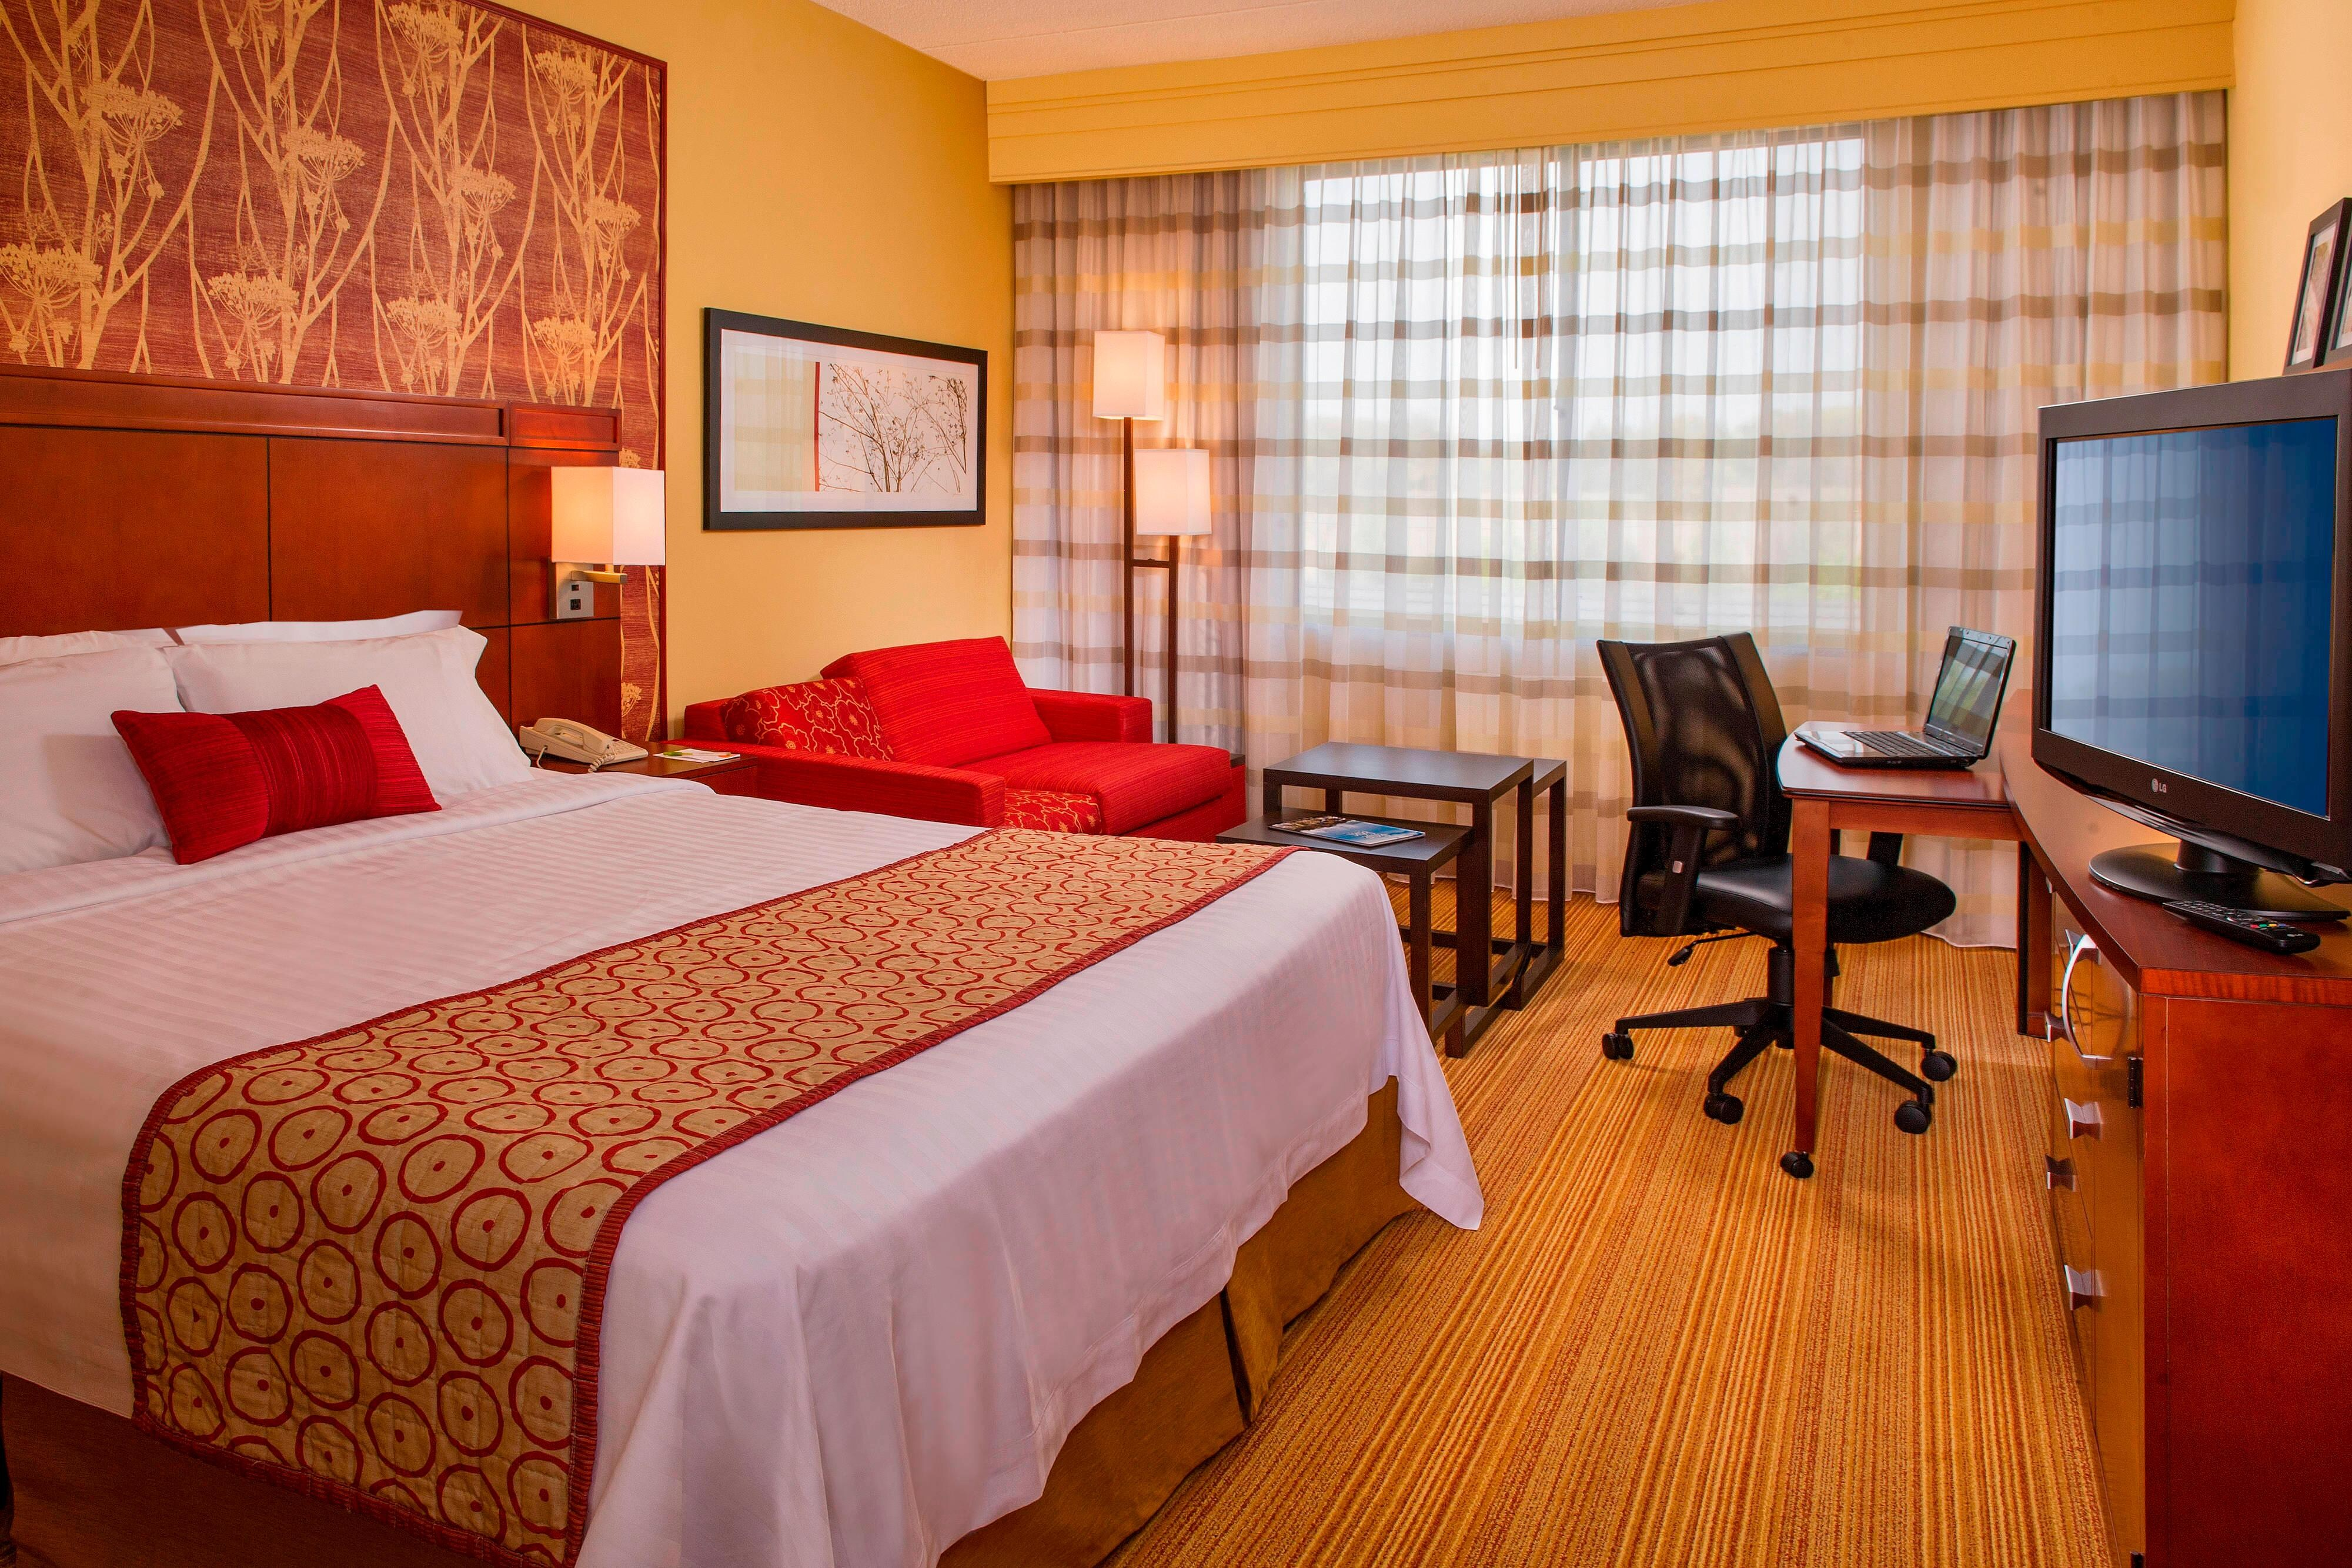 Hotel Rooms in Long Island with Jacuzzis - Courtyard